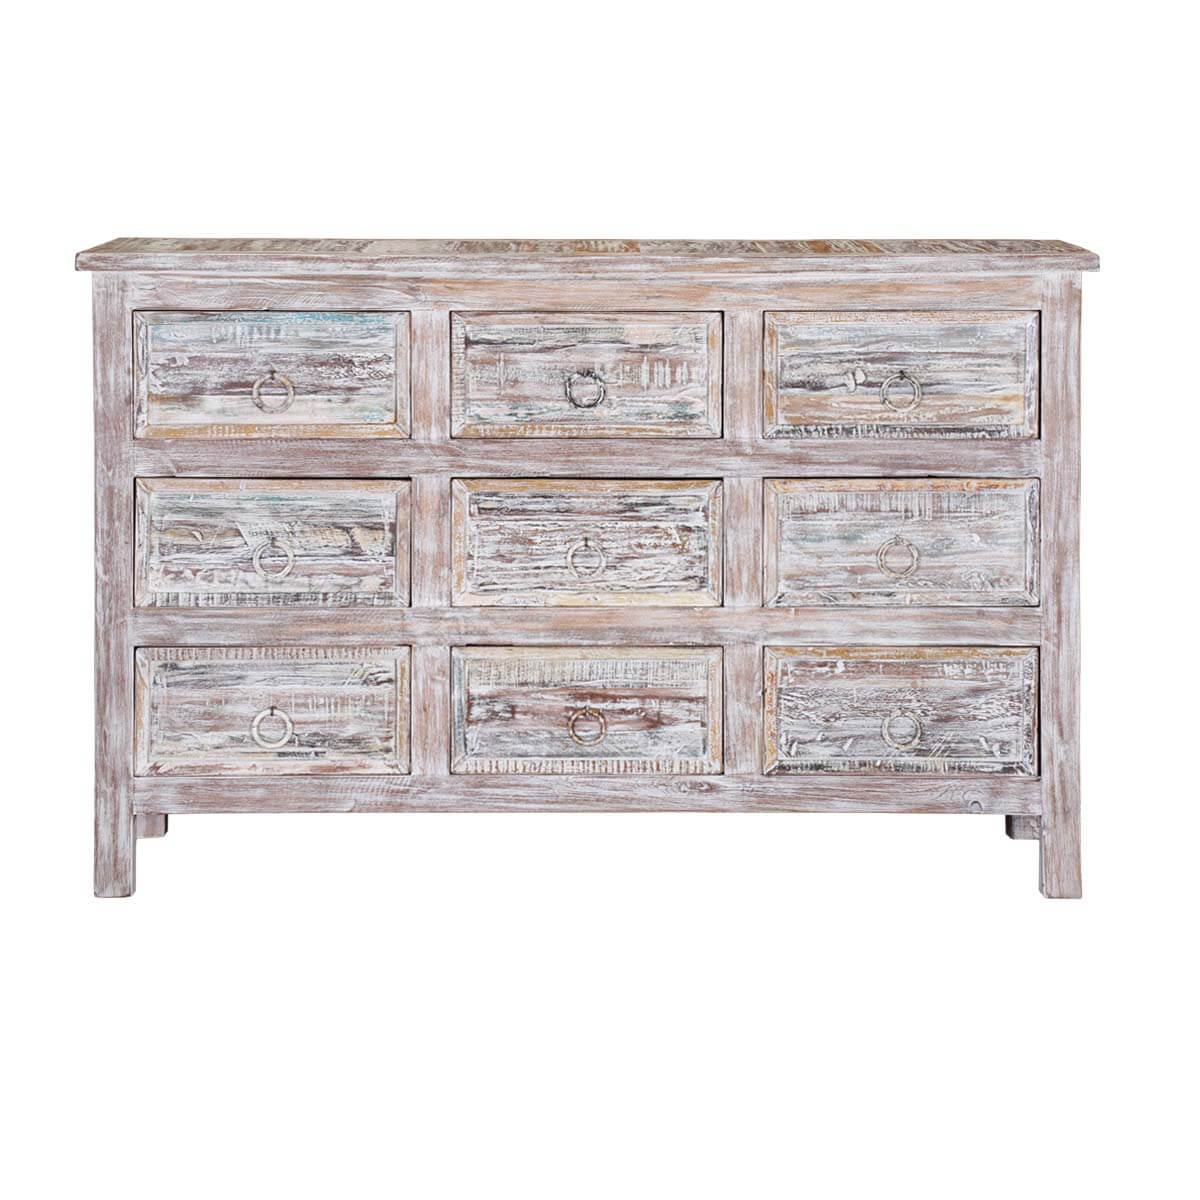 #795F52 Room Bed Room Vanity Dressers & Chests Alabama Rustic Handmade White  with 1200x1200 px of Brand New White Rustic Dresser 12001200 pic @ avoidforclosure.info